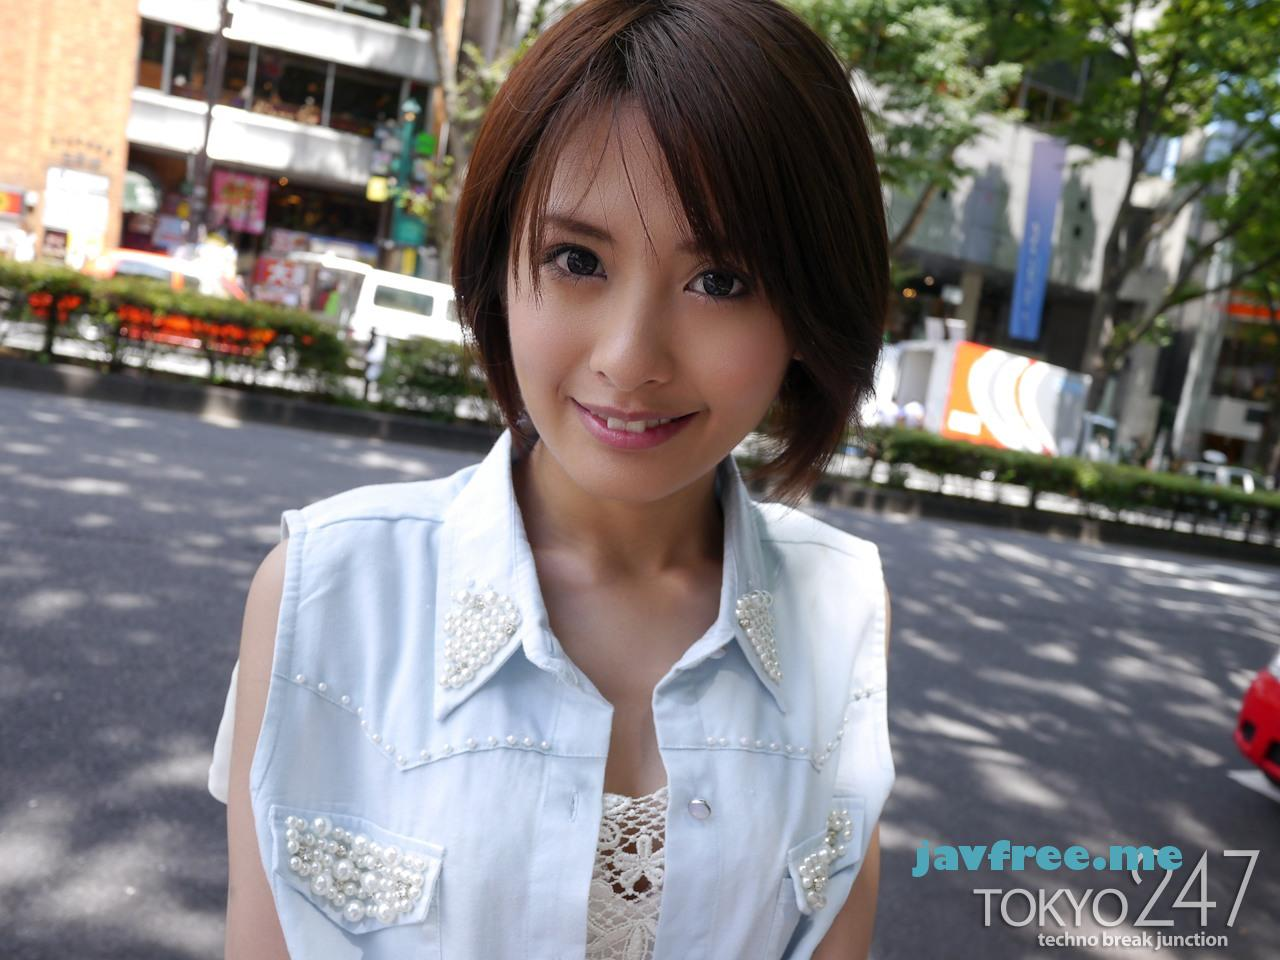 Tokyo-247 406yuuki夏目優希 - image ms_406yuuki001 on https://javfree.me